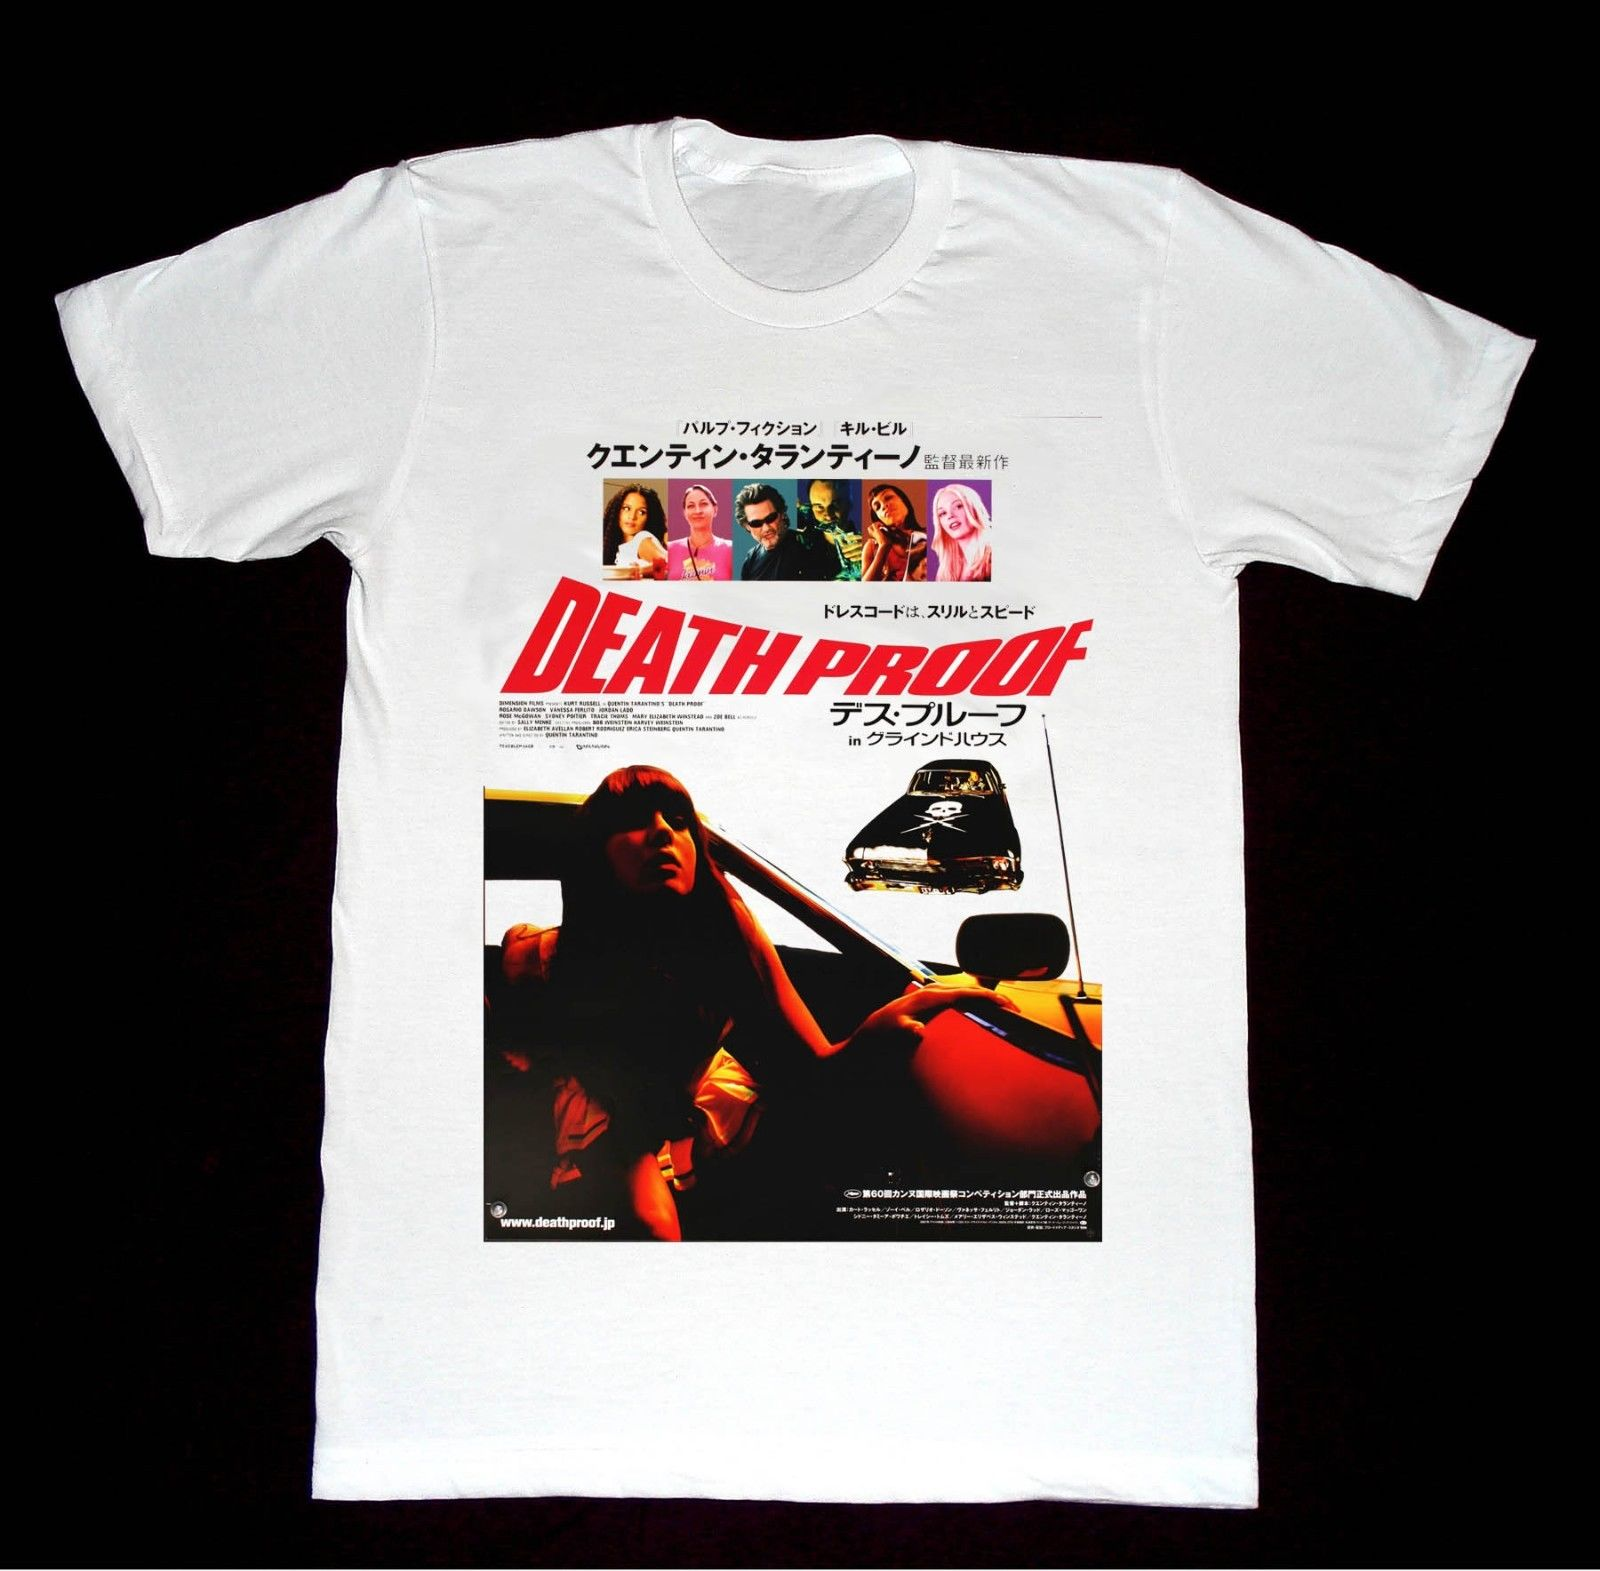 death-proof-import-t-shirt-cult-movie-font-b-tarantino-b-font-kustom-grind-house-100-cotton-t-shirt-for-man-top-tee